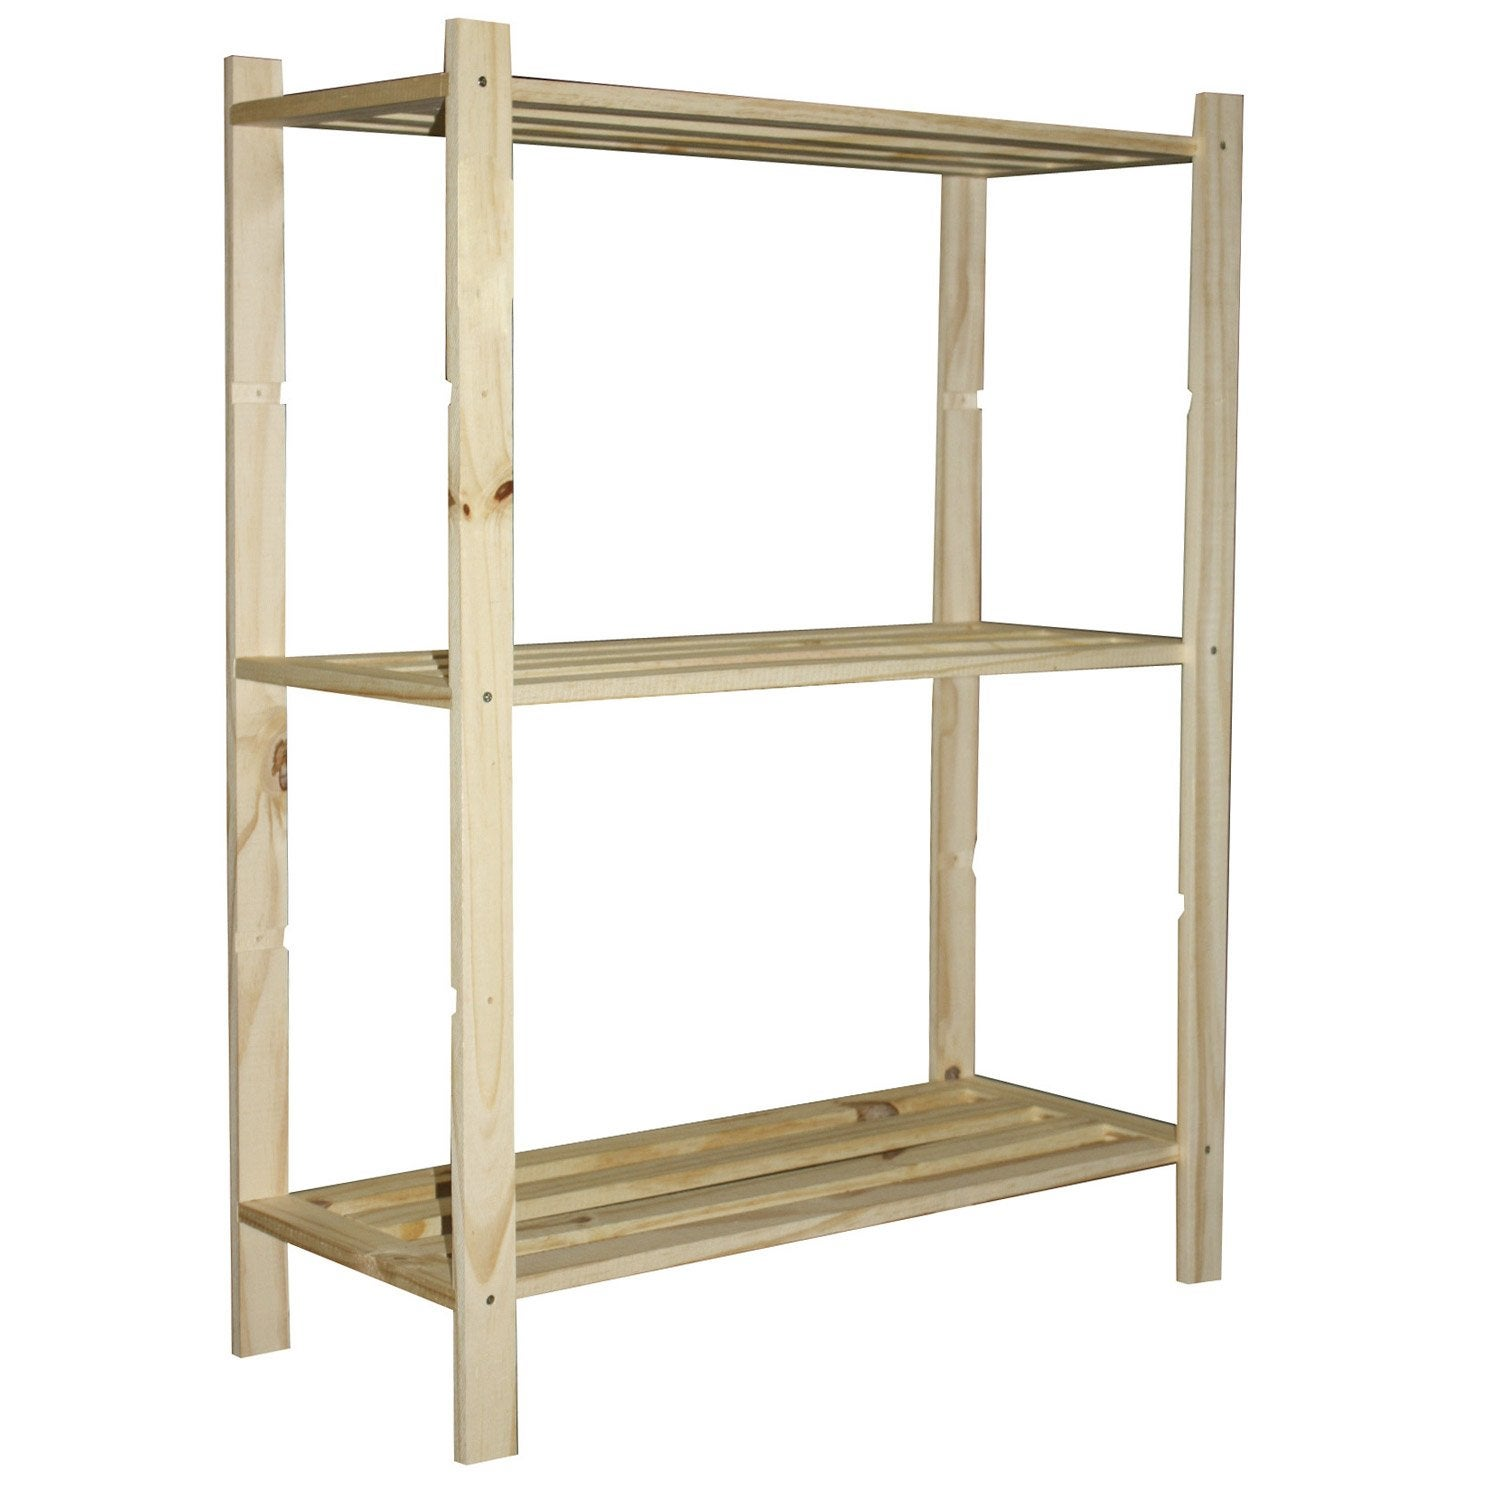 Etag re pin 3 tablettes x x cm leroy merlin - Etagere leroy merlin ...